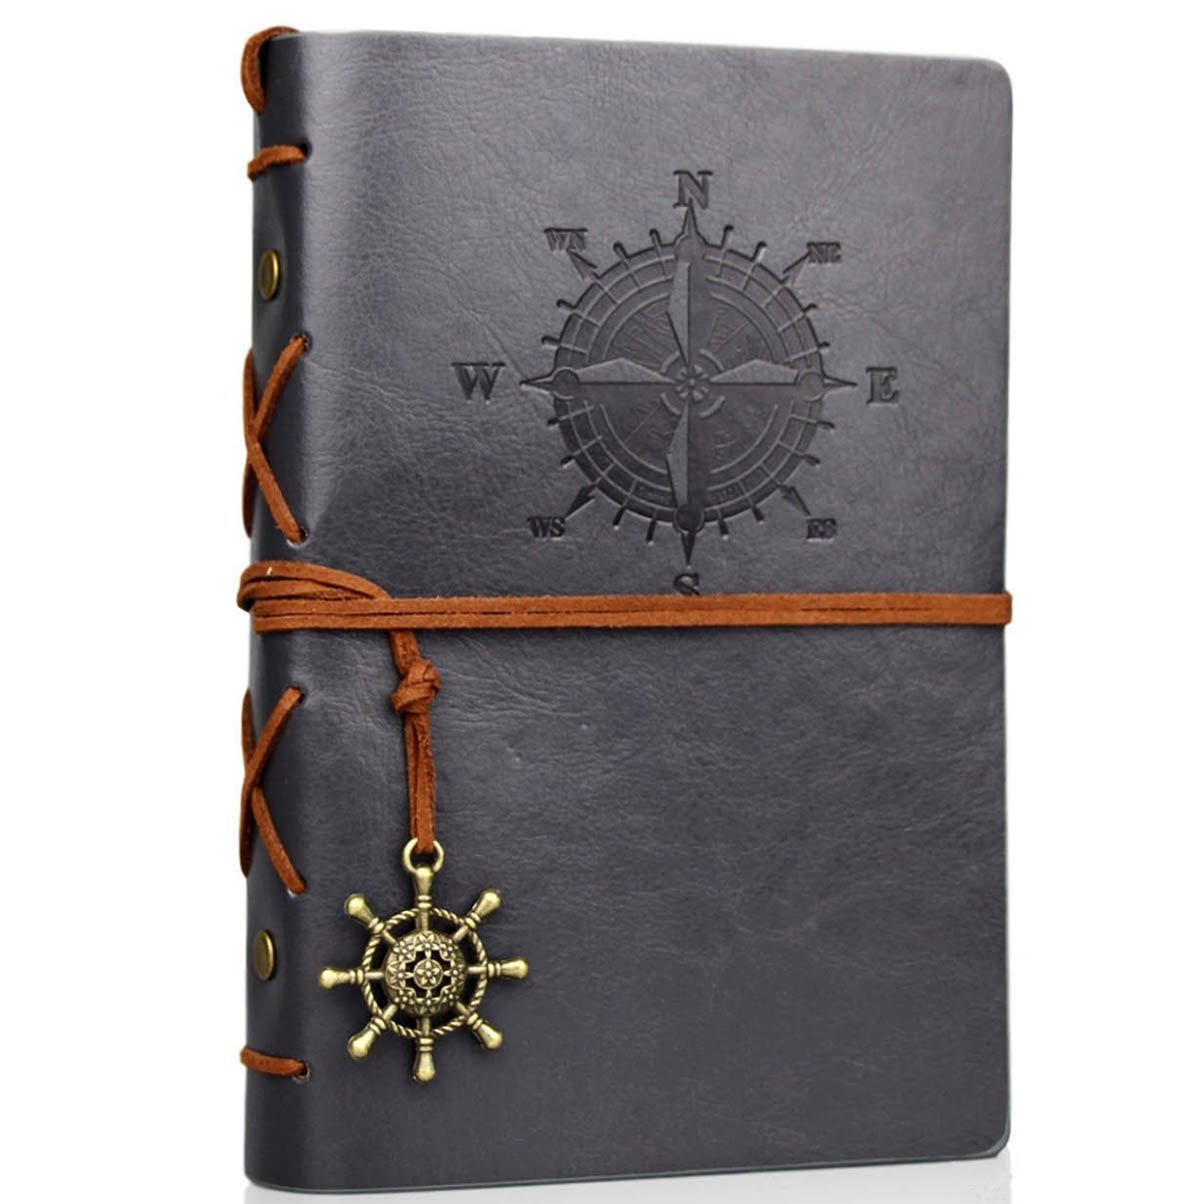 Travel Journal Writing Notebook for on The Go Taking Notes, Vintage PU Leather Note Book, A6, Unlined Page, 6 Ring Binder, 7 x 5 Inches, 80 Sheets/ 160 Pages(Grey)